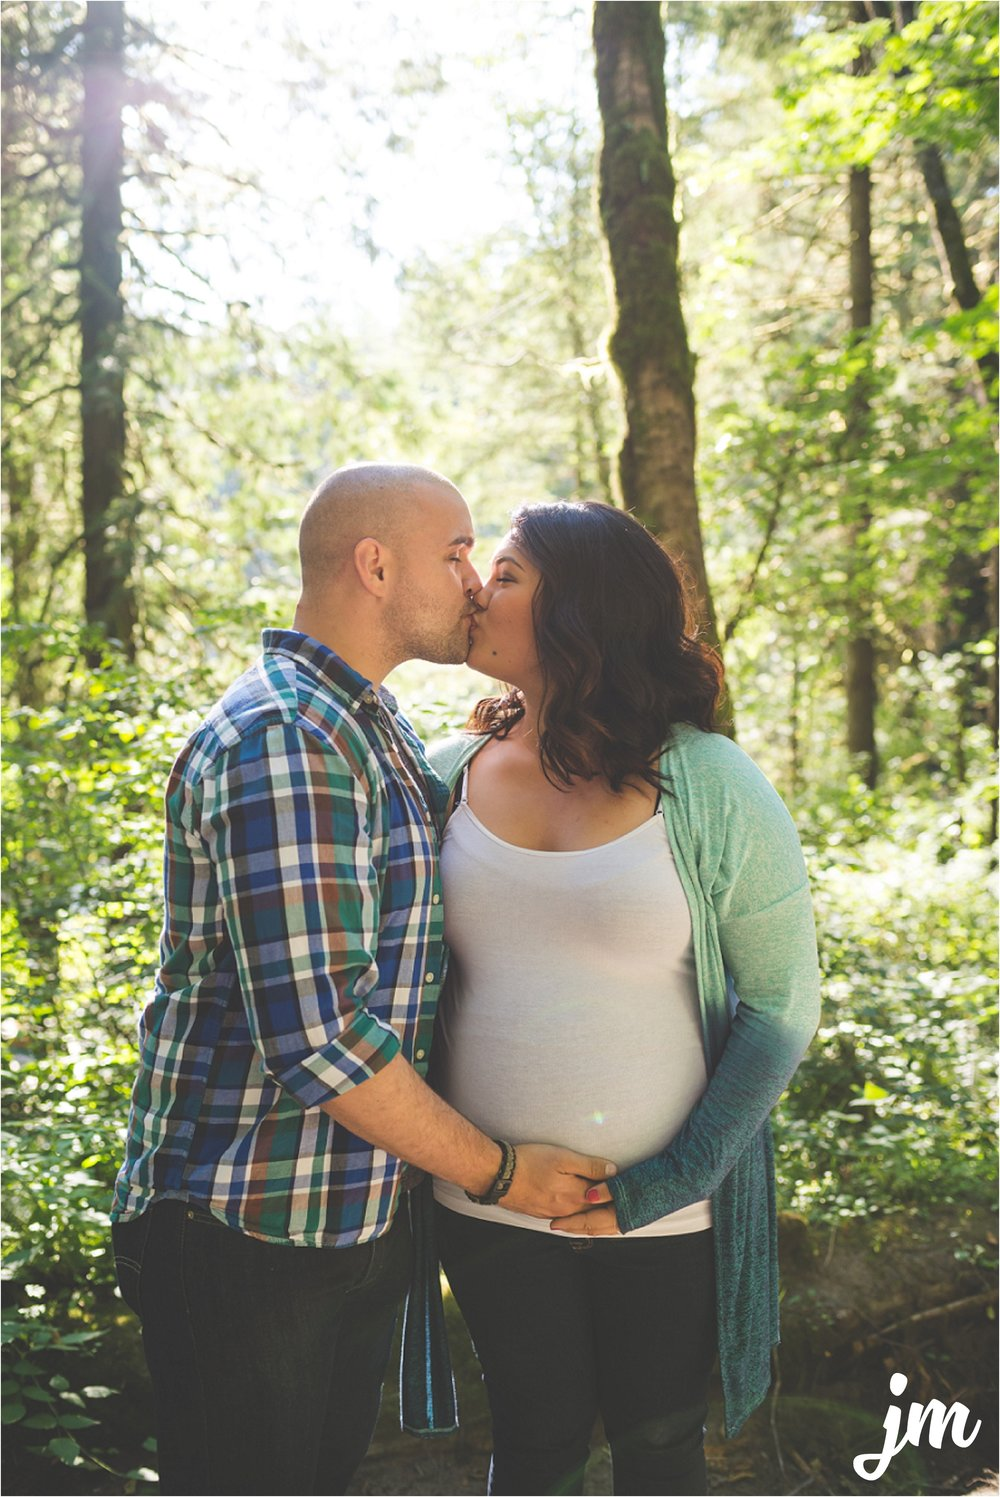 jannicka-mayte-moulton-falls-park-maternity-session-pacific-northwest-lifestyle-photographer_0009.jpg